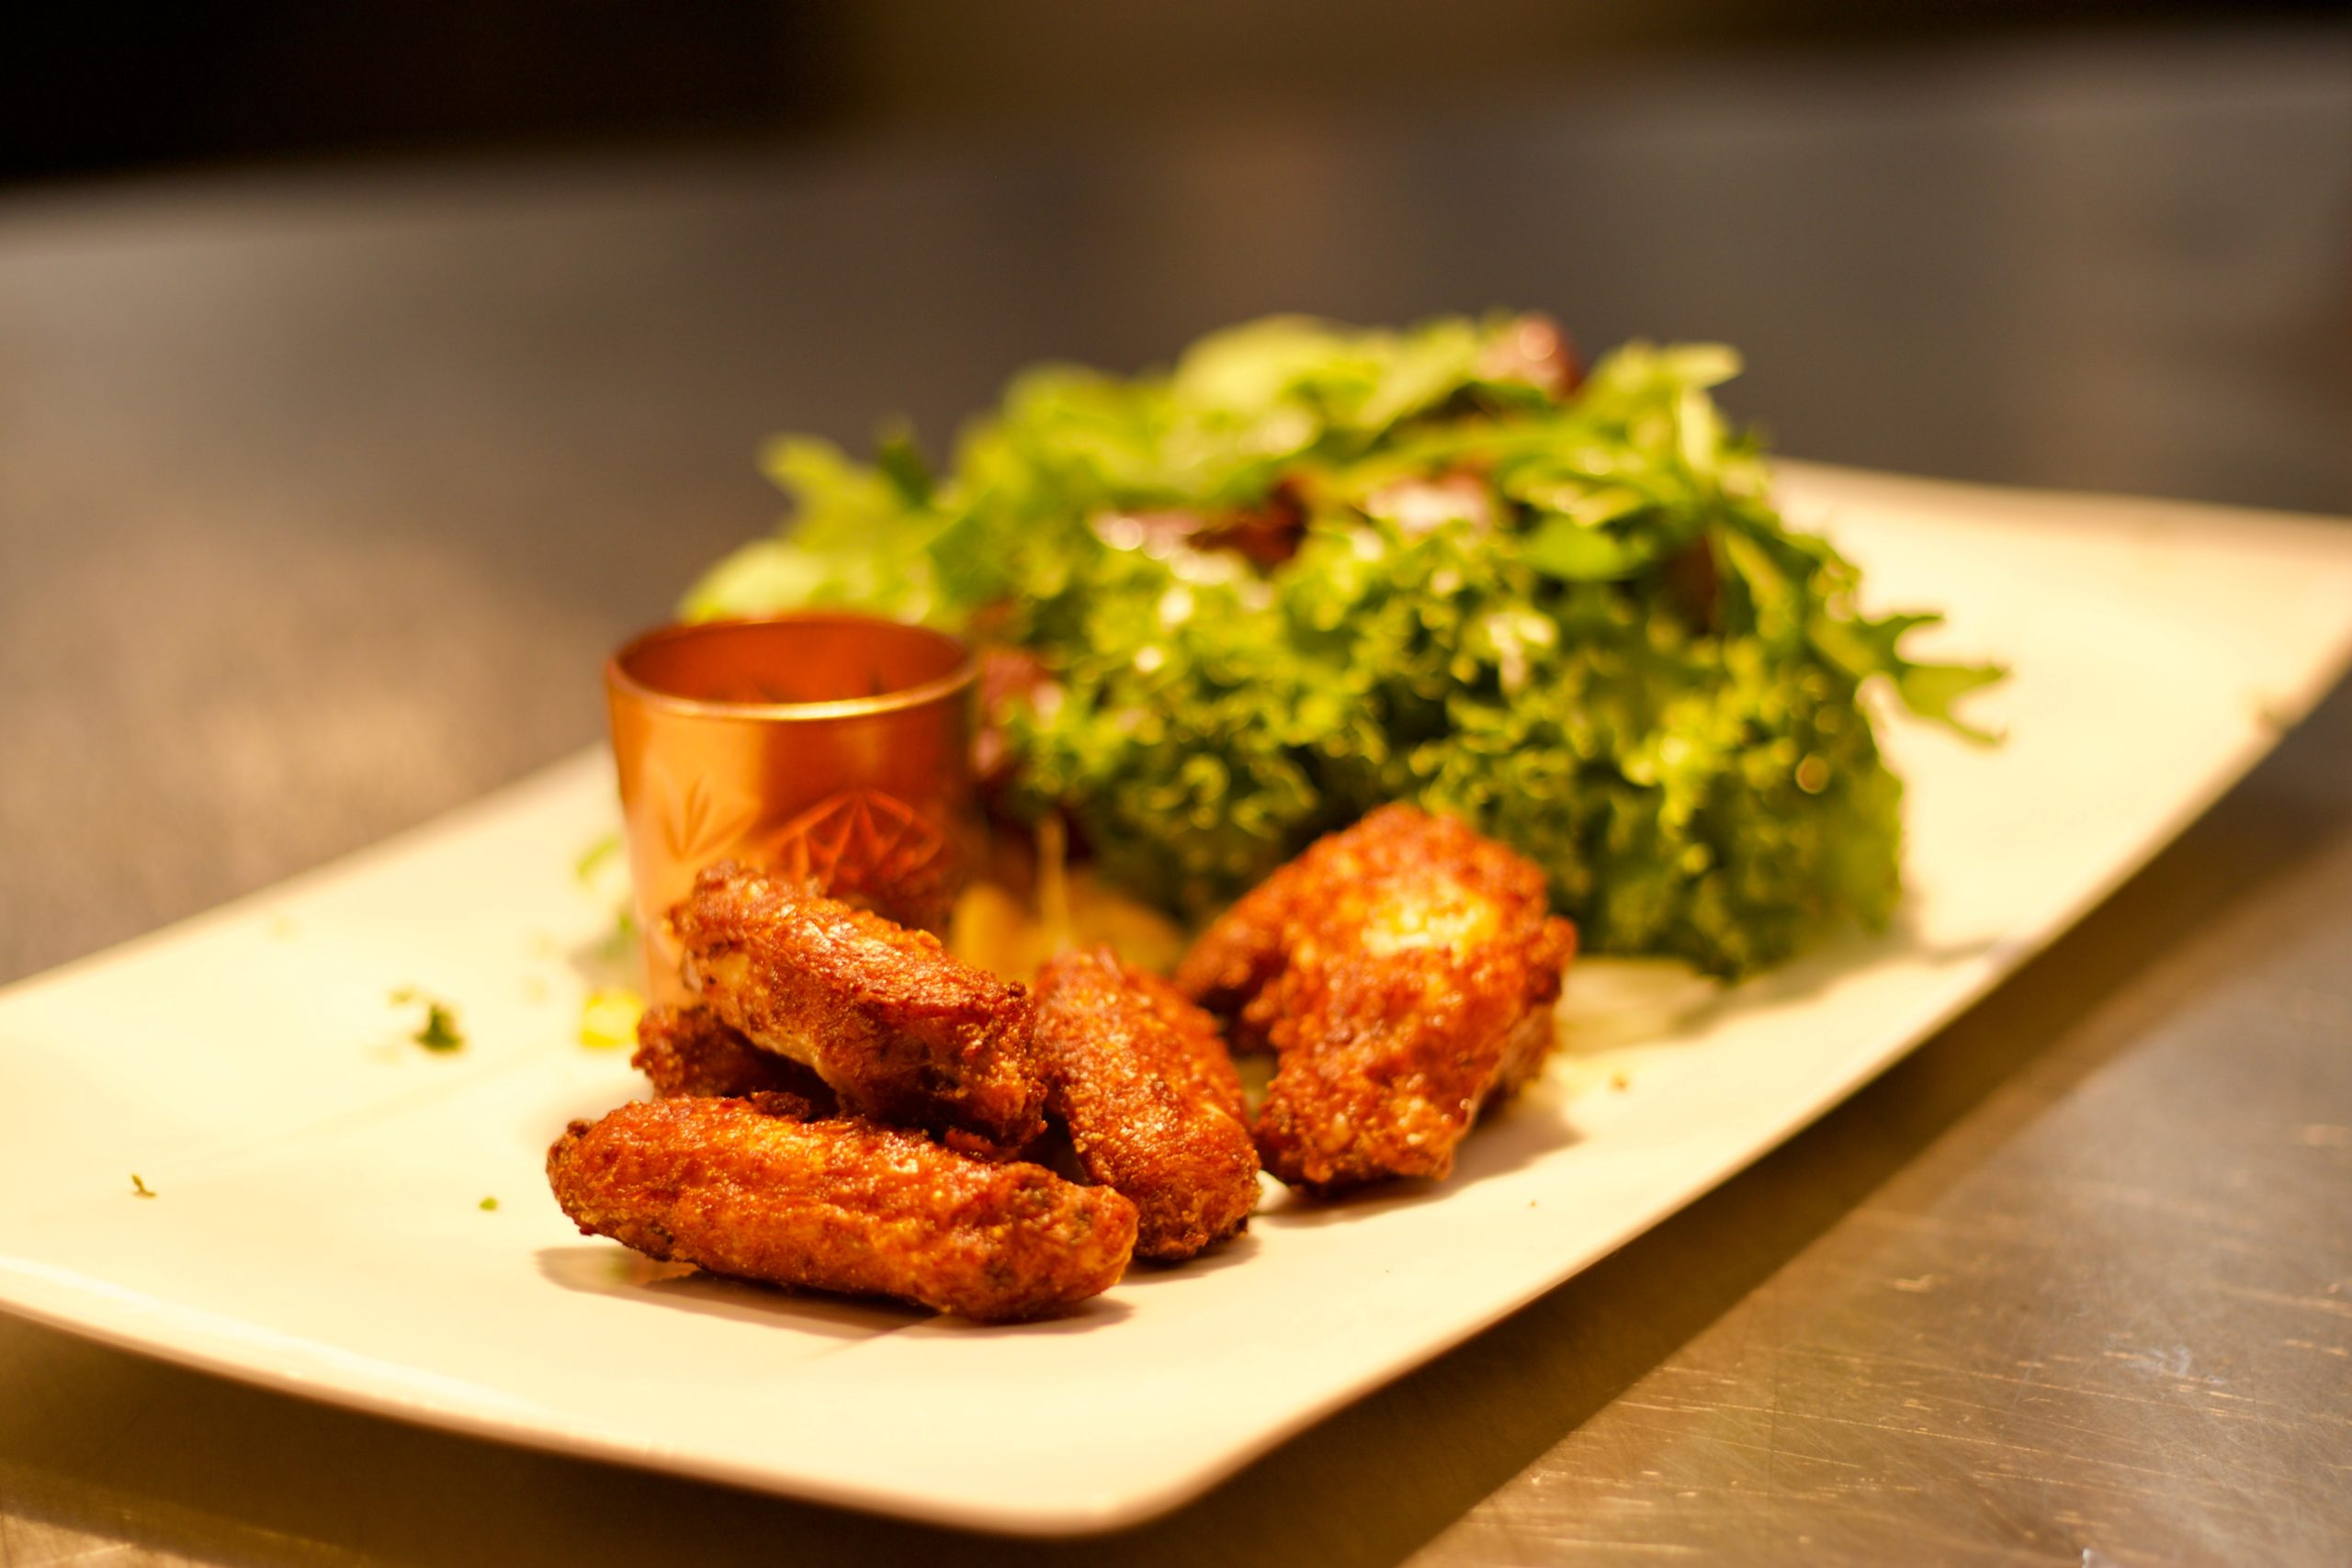 Koren fried chicken wings on a plate with dipping sauce and leafy vegetables.